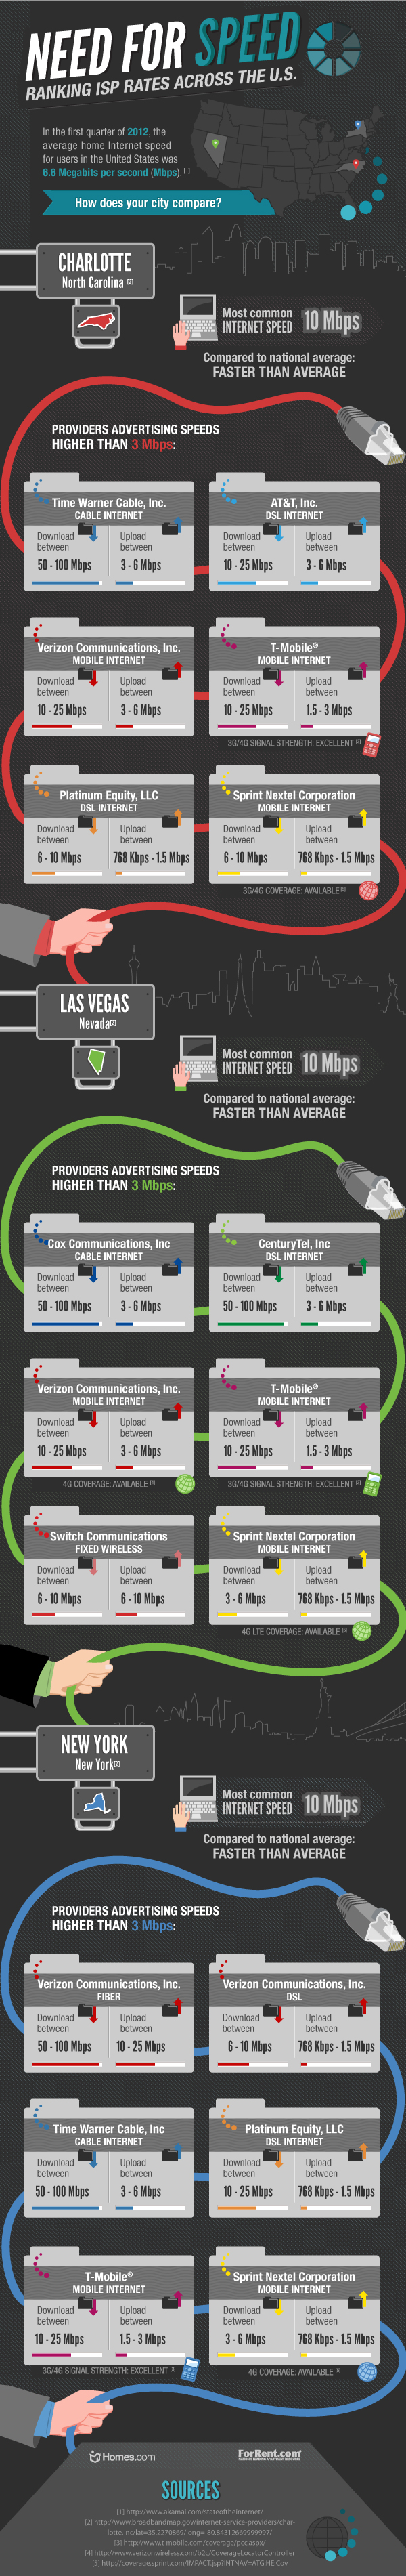 Need for Speed: Ranking ISP Rates Across the U.S.